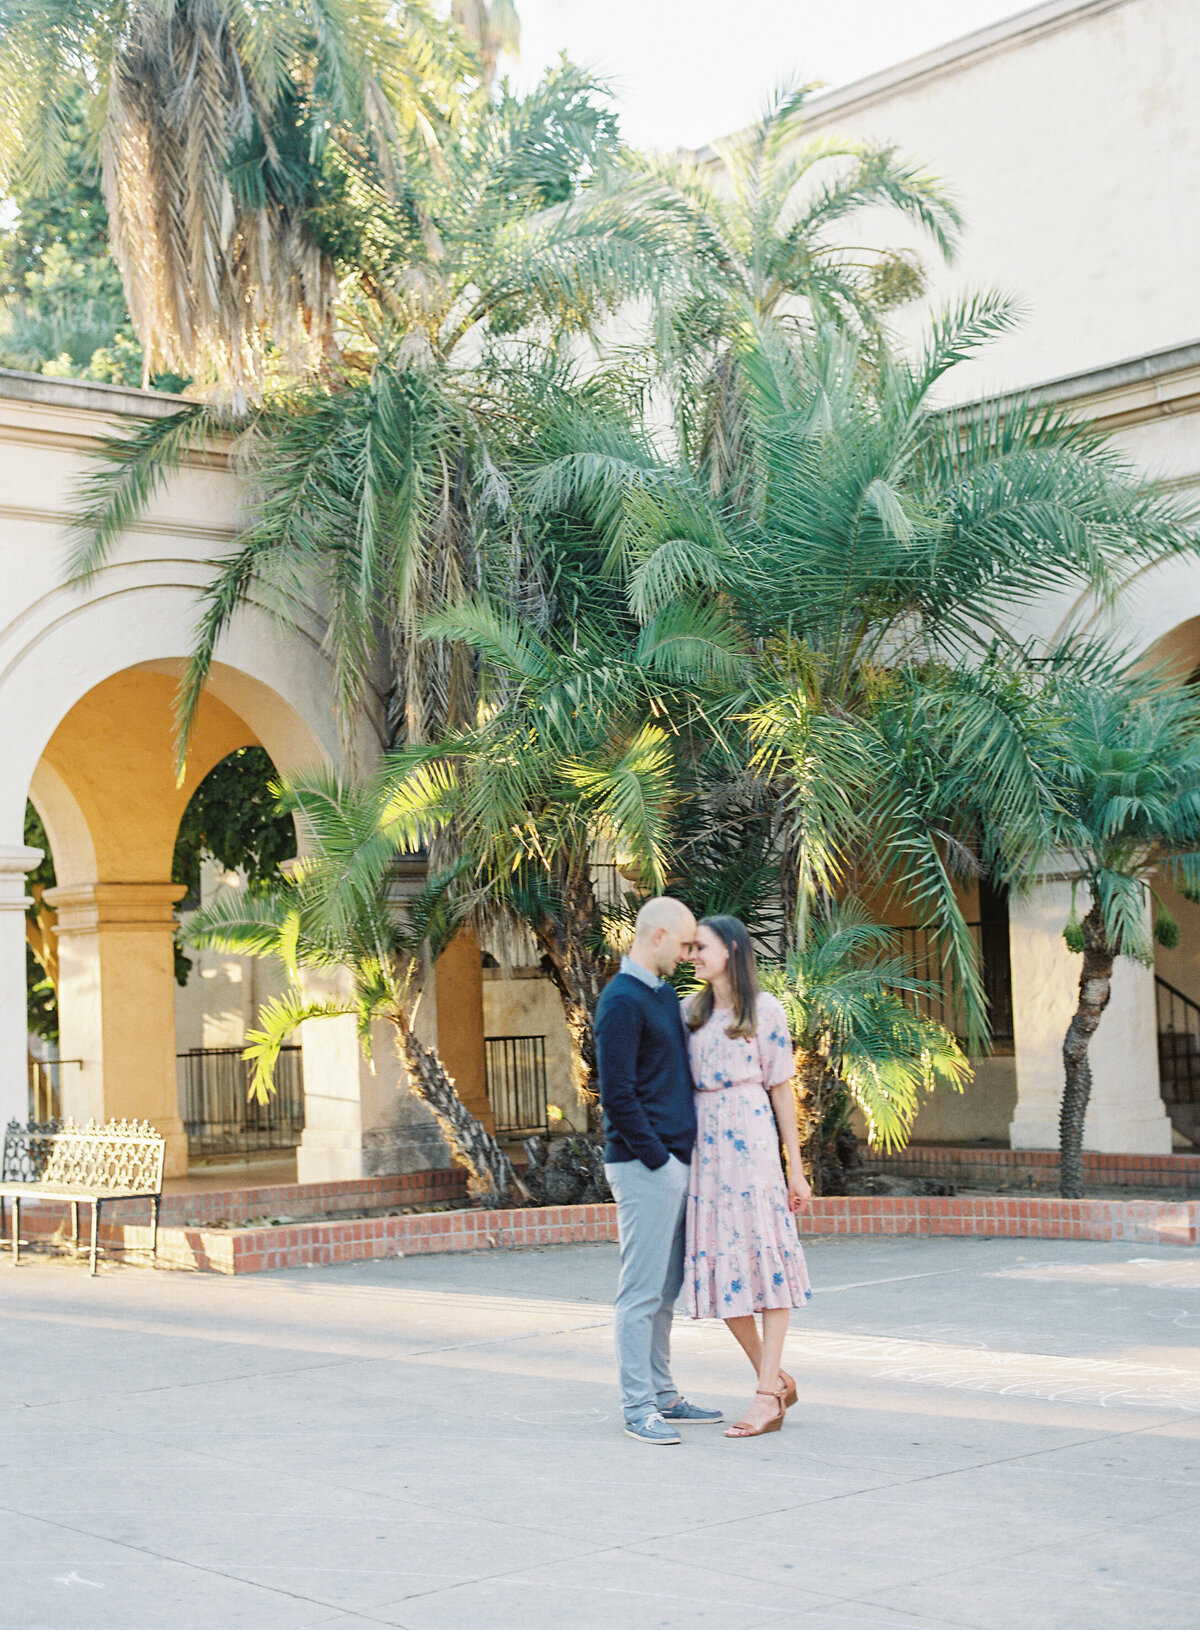 Beaufort Wedding Photographer | Charleston Wedding Photographer | Hilton Head Wedding Photographer | Bluffton Wedding Photographer | Savannah Wedding Photographer | San Luis Obispo Wedding Photographer | Paso Robles Wedding Photographer-25